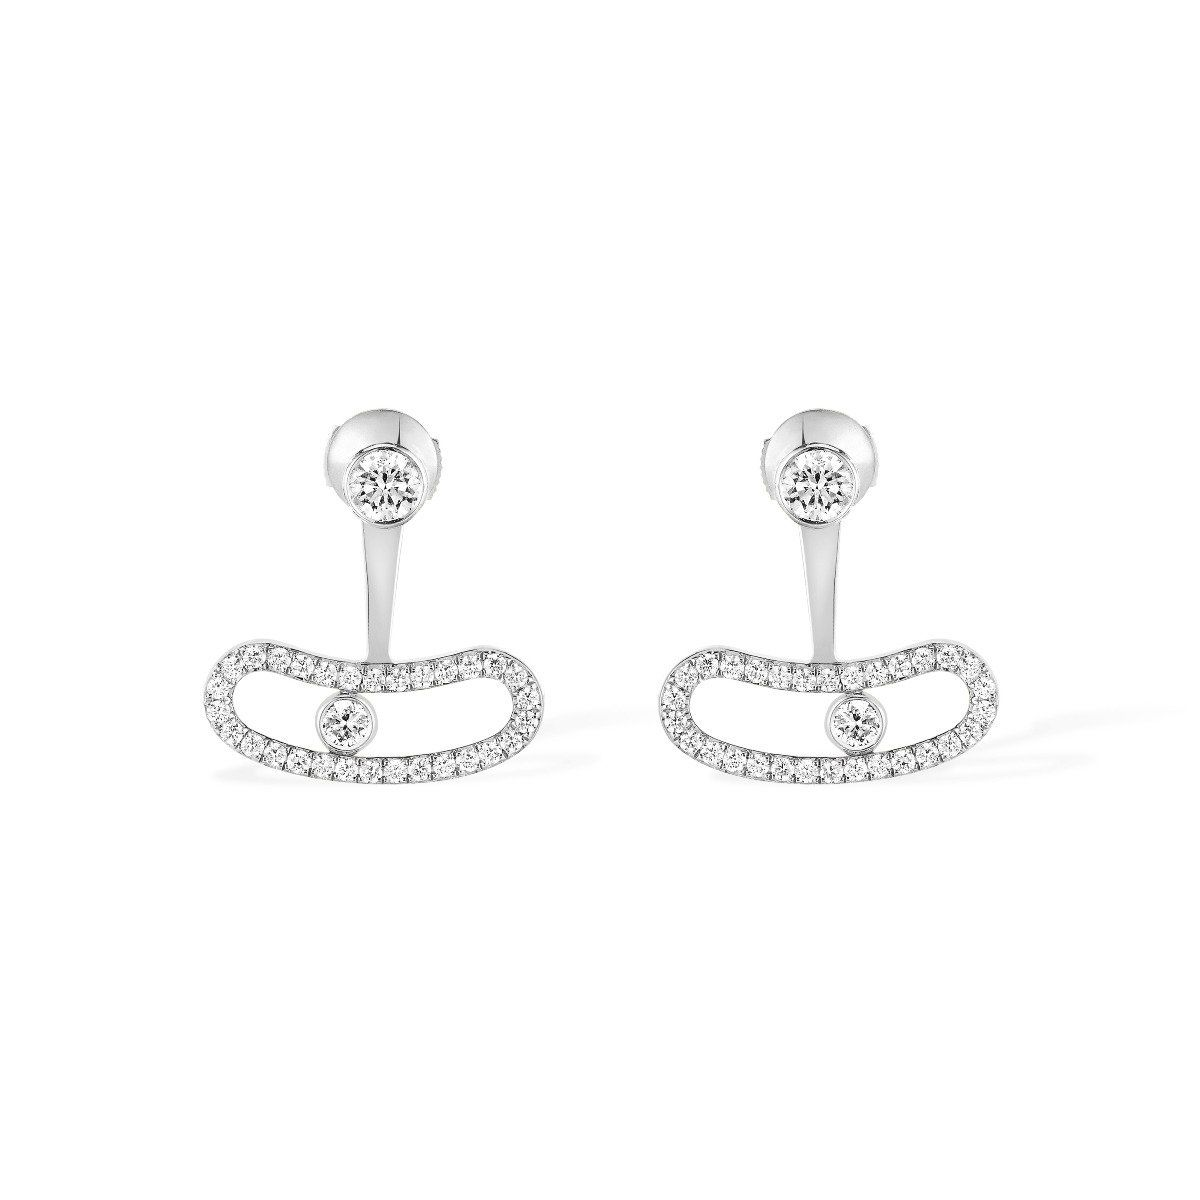 Move uno bellow the lobe earrings  white gold